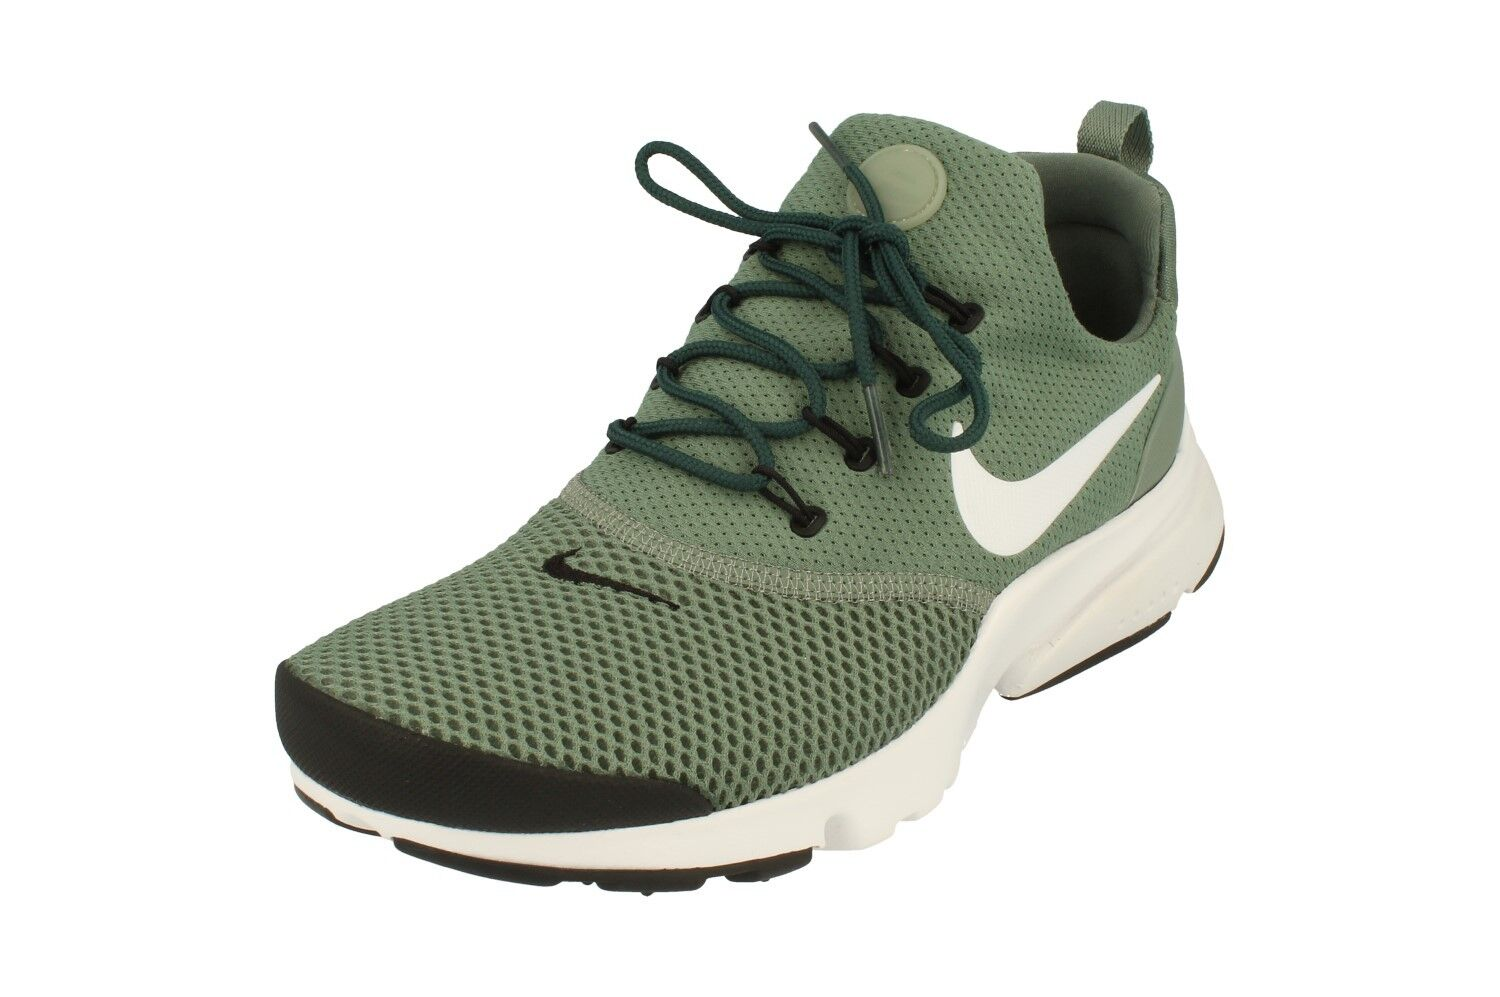 Nike Presto Fly Baskets homme fonctionnement Trainers 908019 Baskets Fly chaussures 303 d86fa5